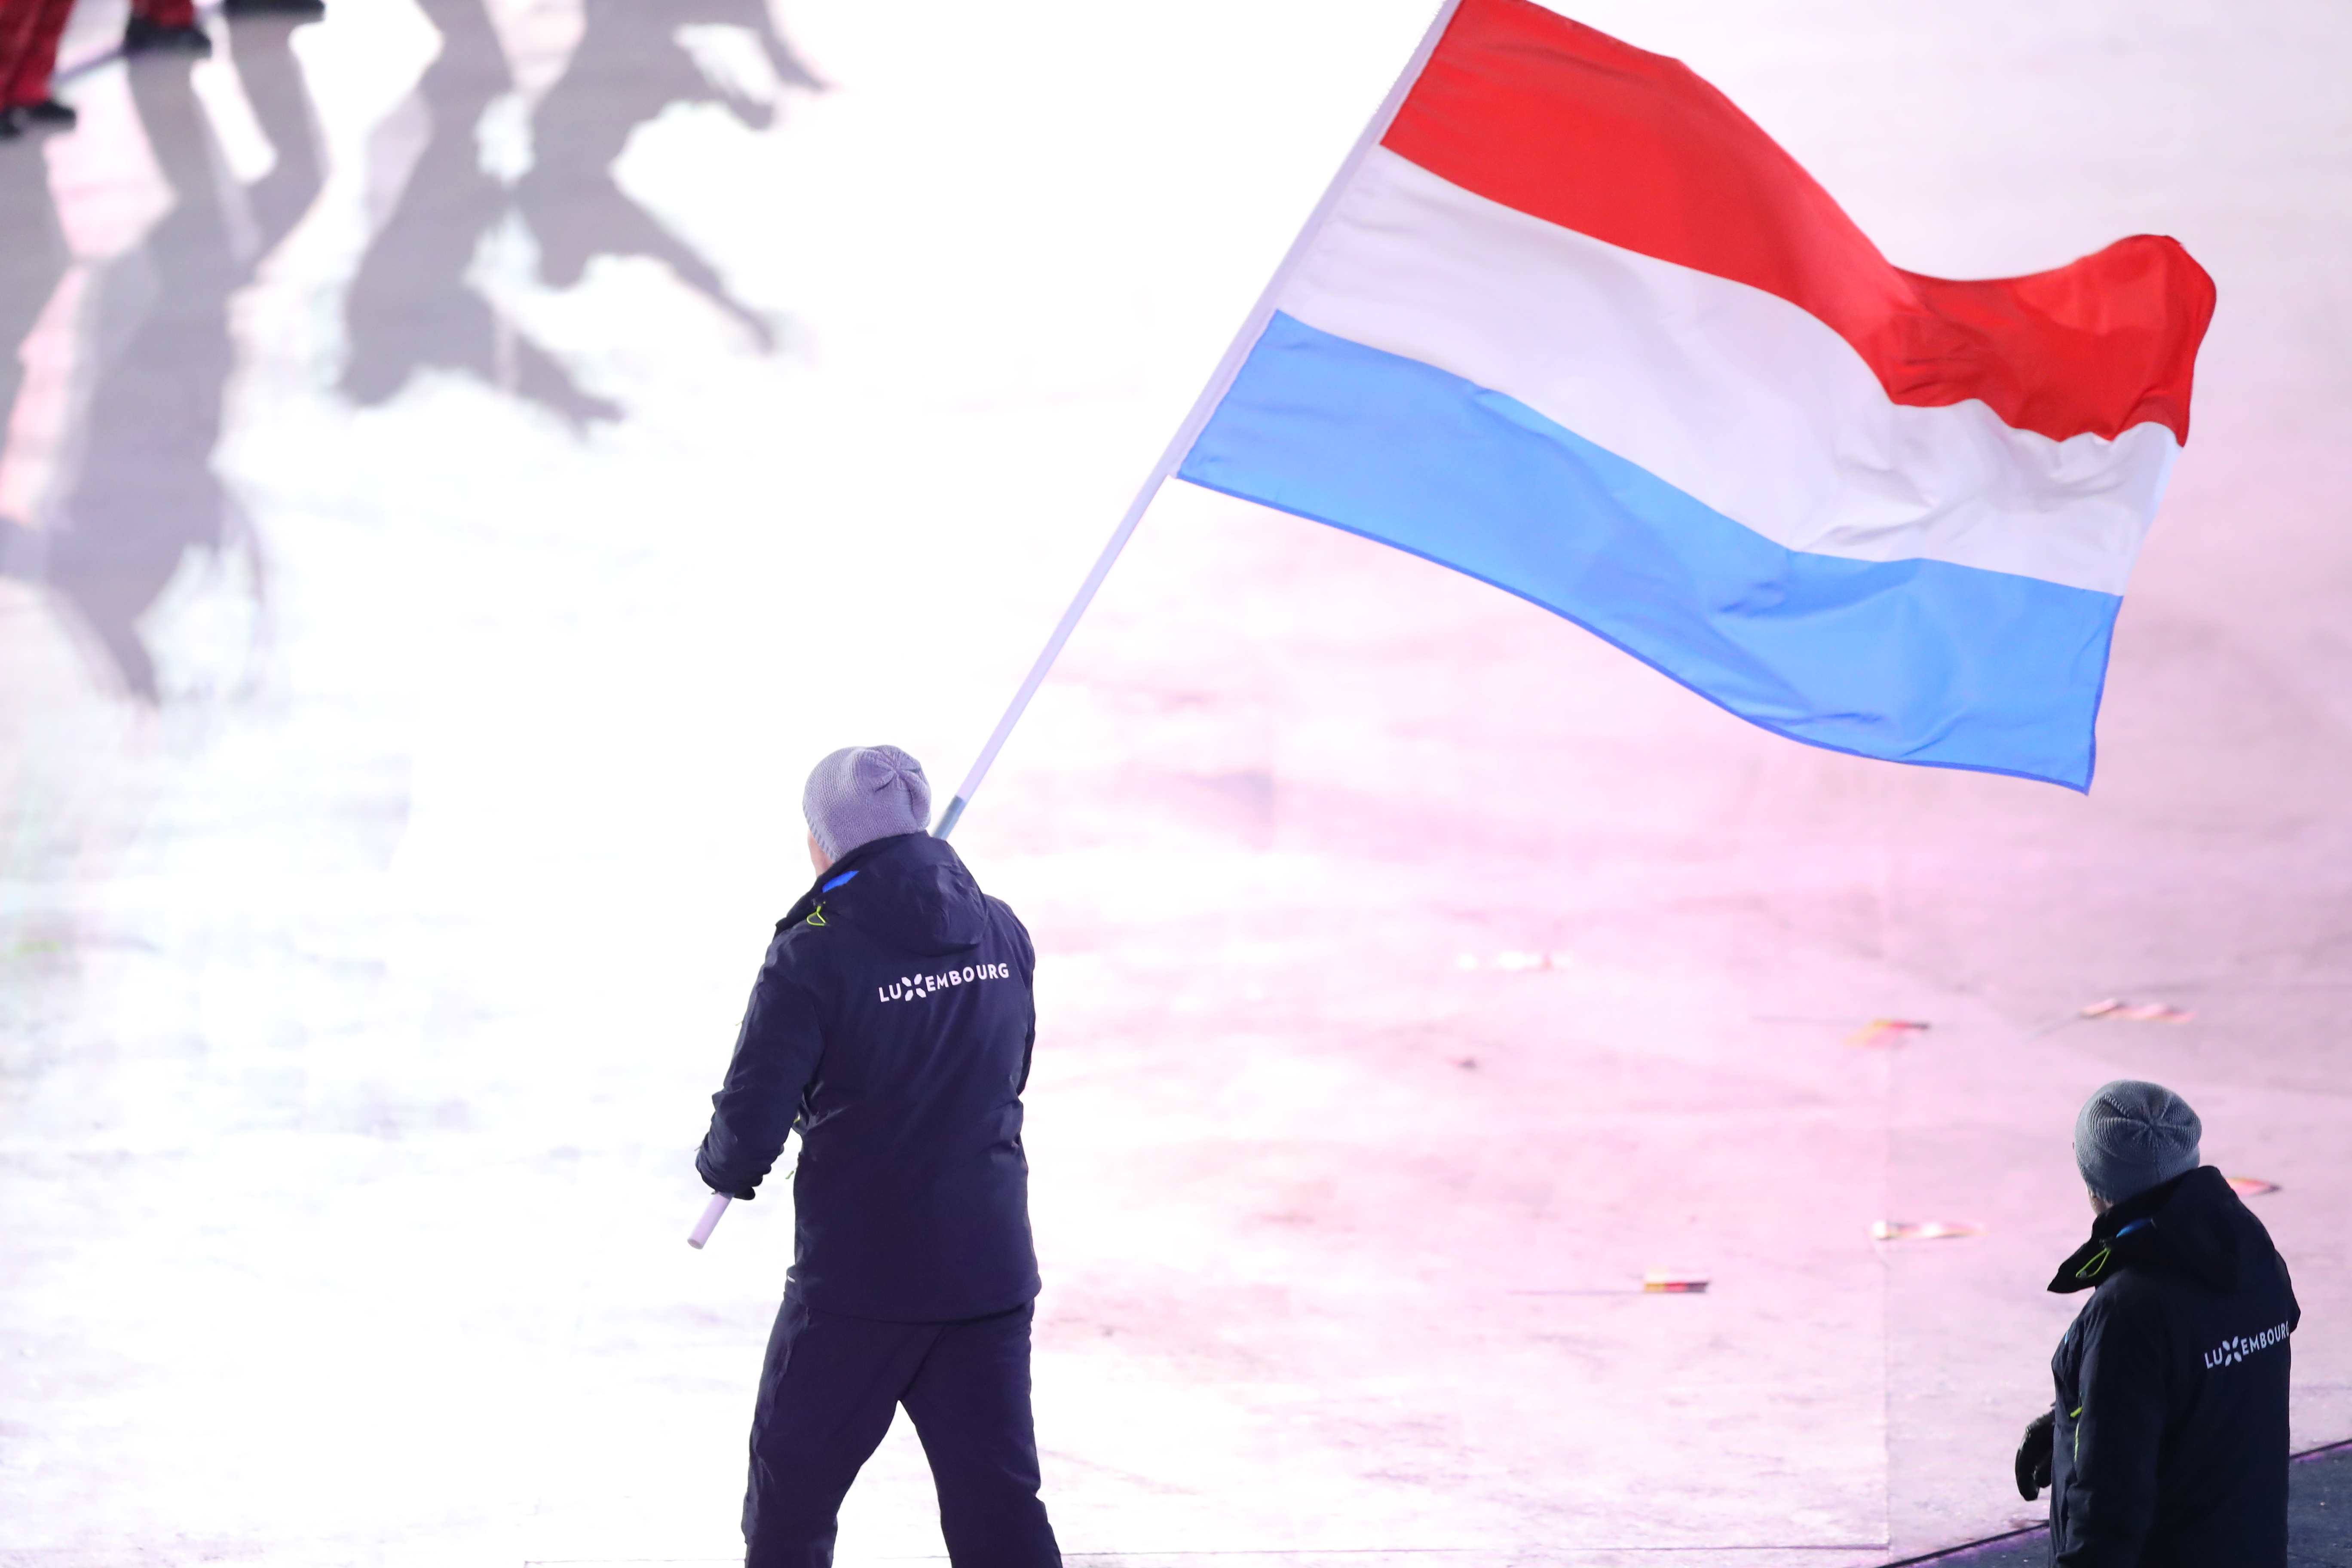 2018 Winter Olympic Games - Opening Ceremony  LUXEMBOURG,  PYEONGCHANG-GUN, SOUTH KOREA - FEBRUARY 09: Flag bearer Matthieu OSCH of Luxembourg and teammates enter the stadium during the Opening Ceremony of the PyeongChang 2018 Winter Olympic Games at PyeongChang Olympic Stadium on February 9, 2018 in Pyeongchang-gun, South Korea. XXIII. OLYMPIC WINTER GAMES PYEONGCHANG 2018: OPENING CEREMONY,  PyeongChang, Korea, Winter Olympics; PyeongChang Olympic Stadium, on 9. February 2018, fee liable image, copyright © ATP / OSADA Yohei  Featuring: Matthieu OSCH of Luxembourg Where: Pyeongchang, Gangwon Province, South Korea When: 09 Feb 2018 Credit: ATP/WENN.com  **Not available for publication in Germany or France. No Contact Music.**